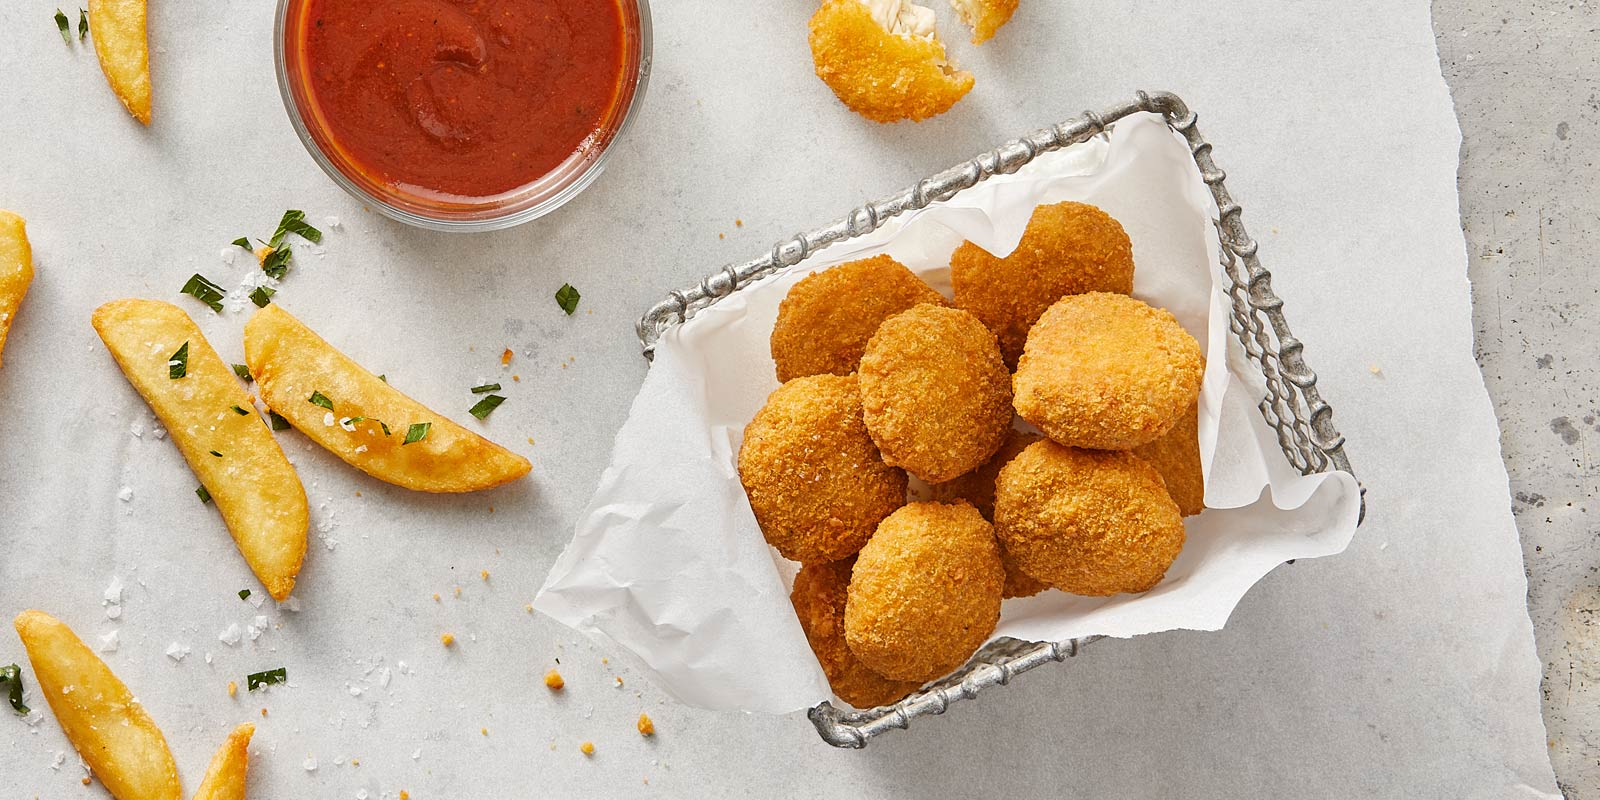 Plant-based Chick'n Nuggets